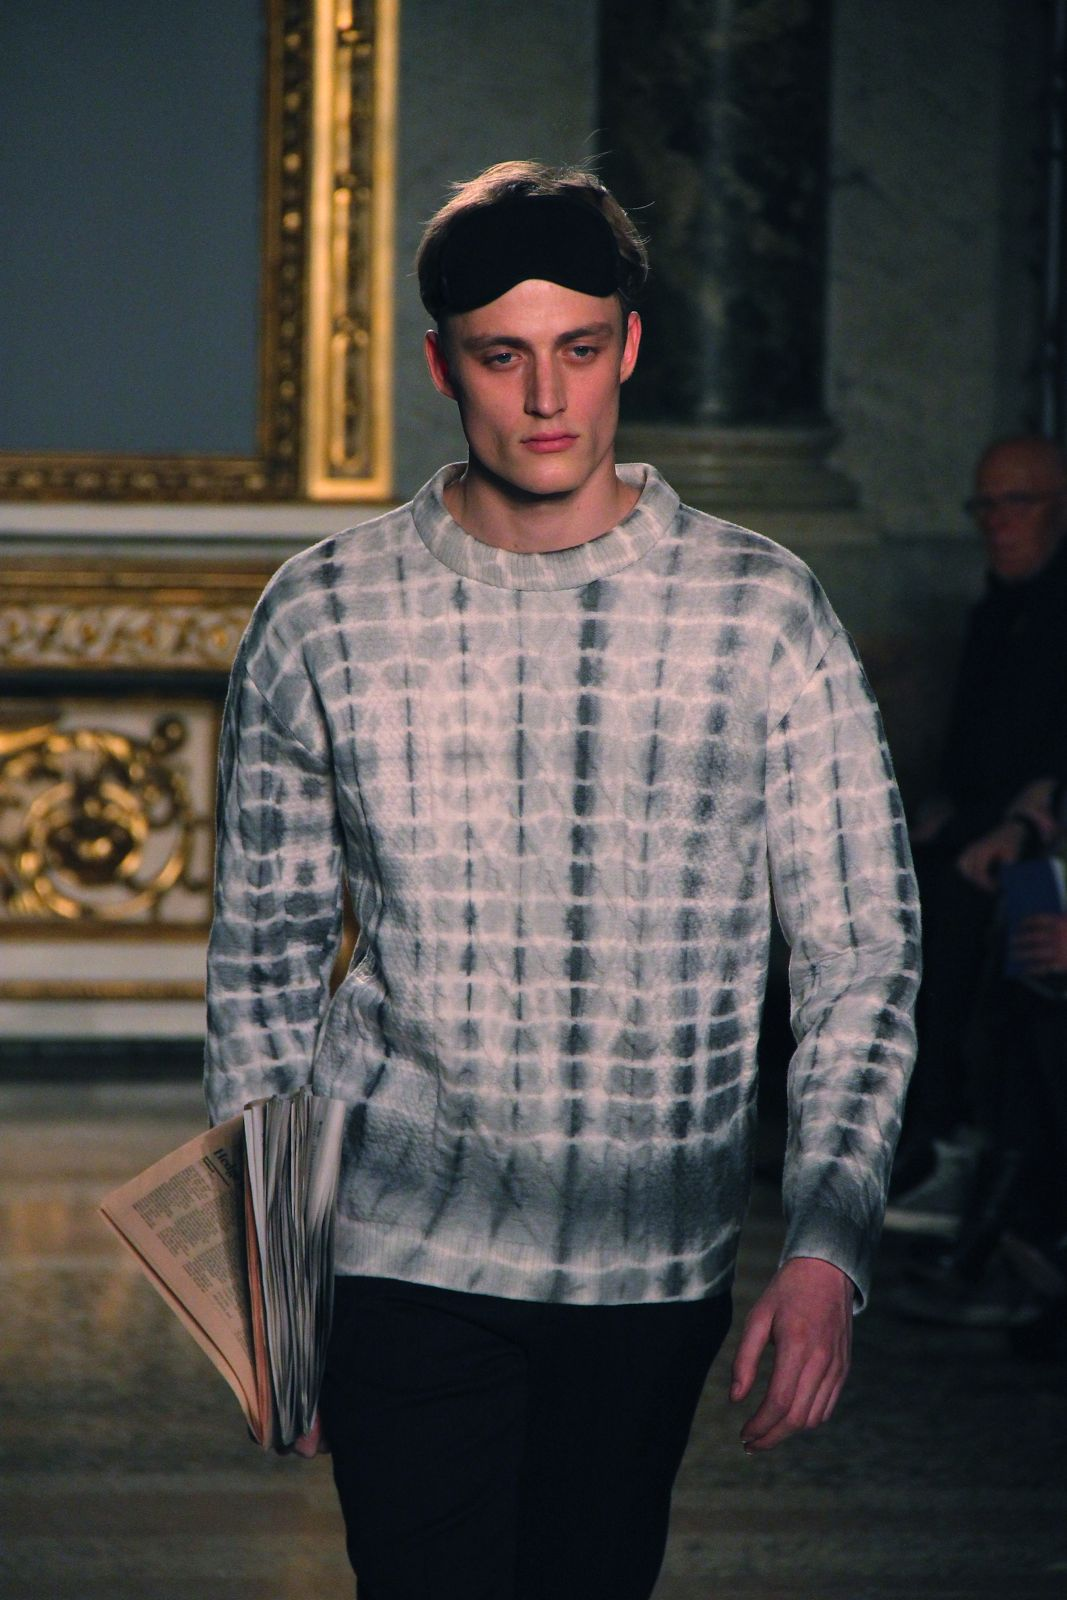 Nicole Farhi Fall Winter 2012 Men